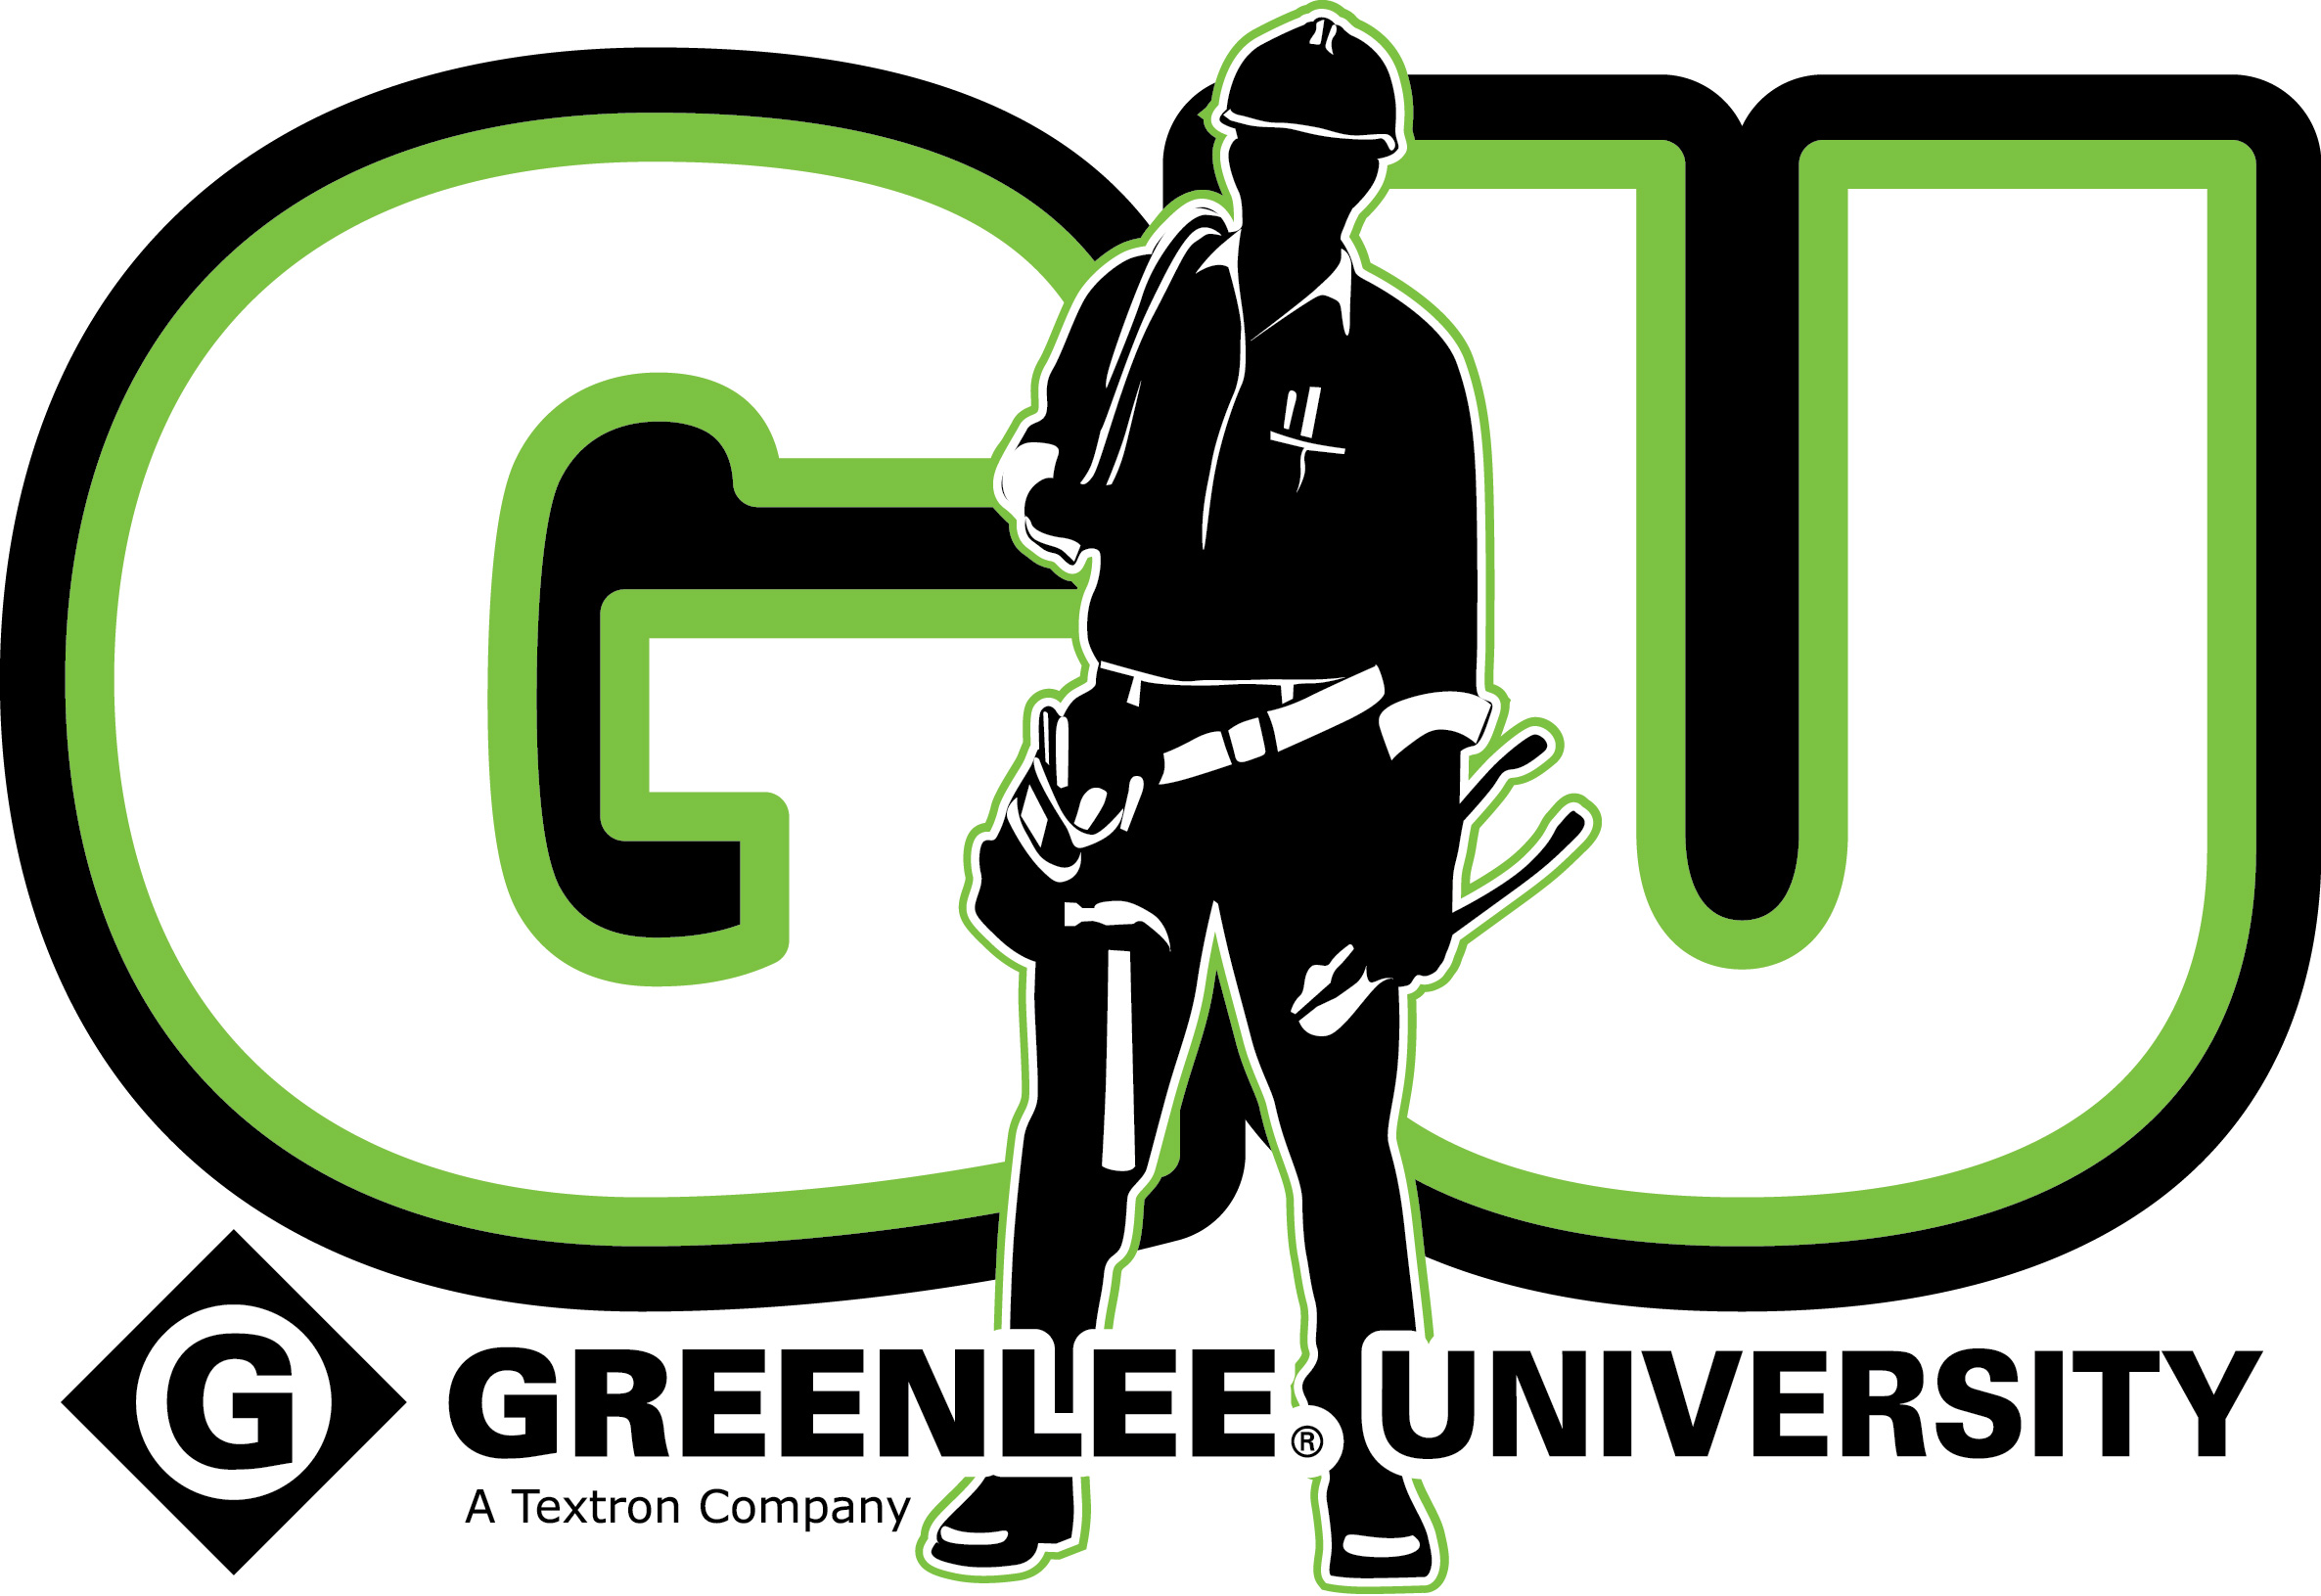 Greenlee University